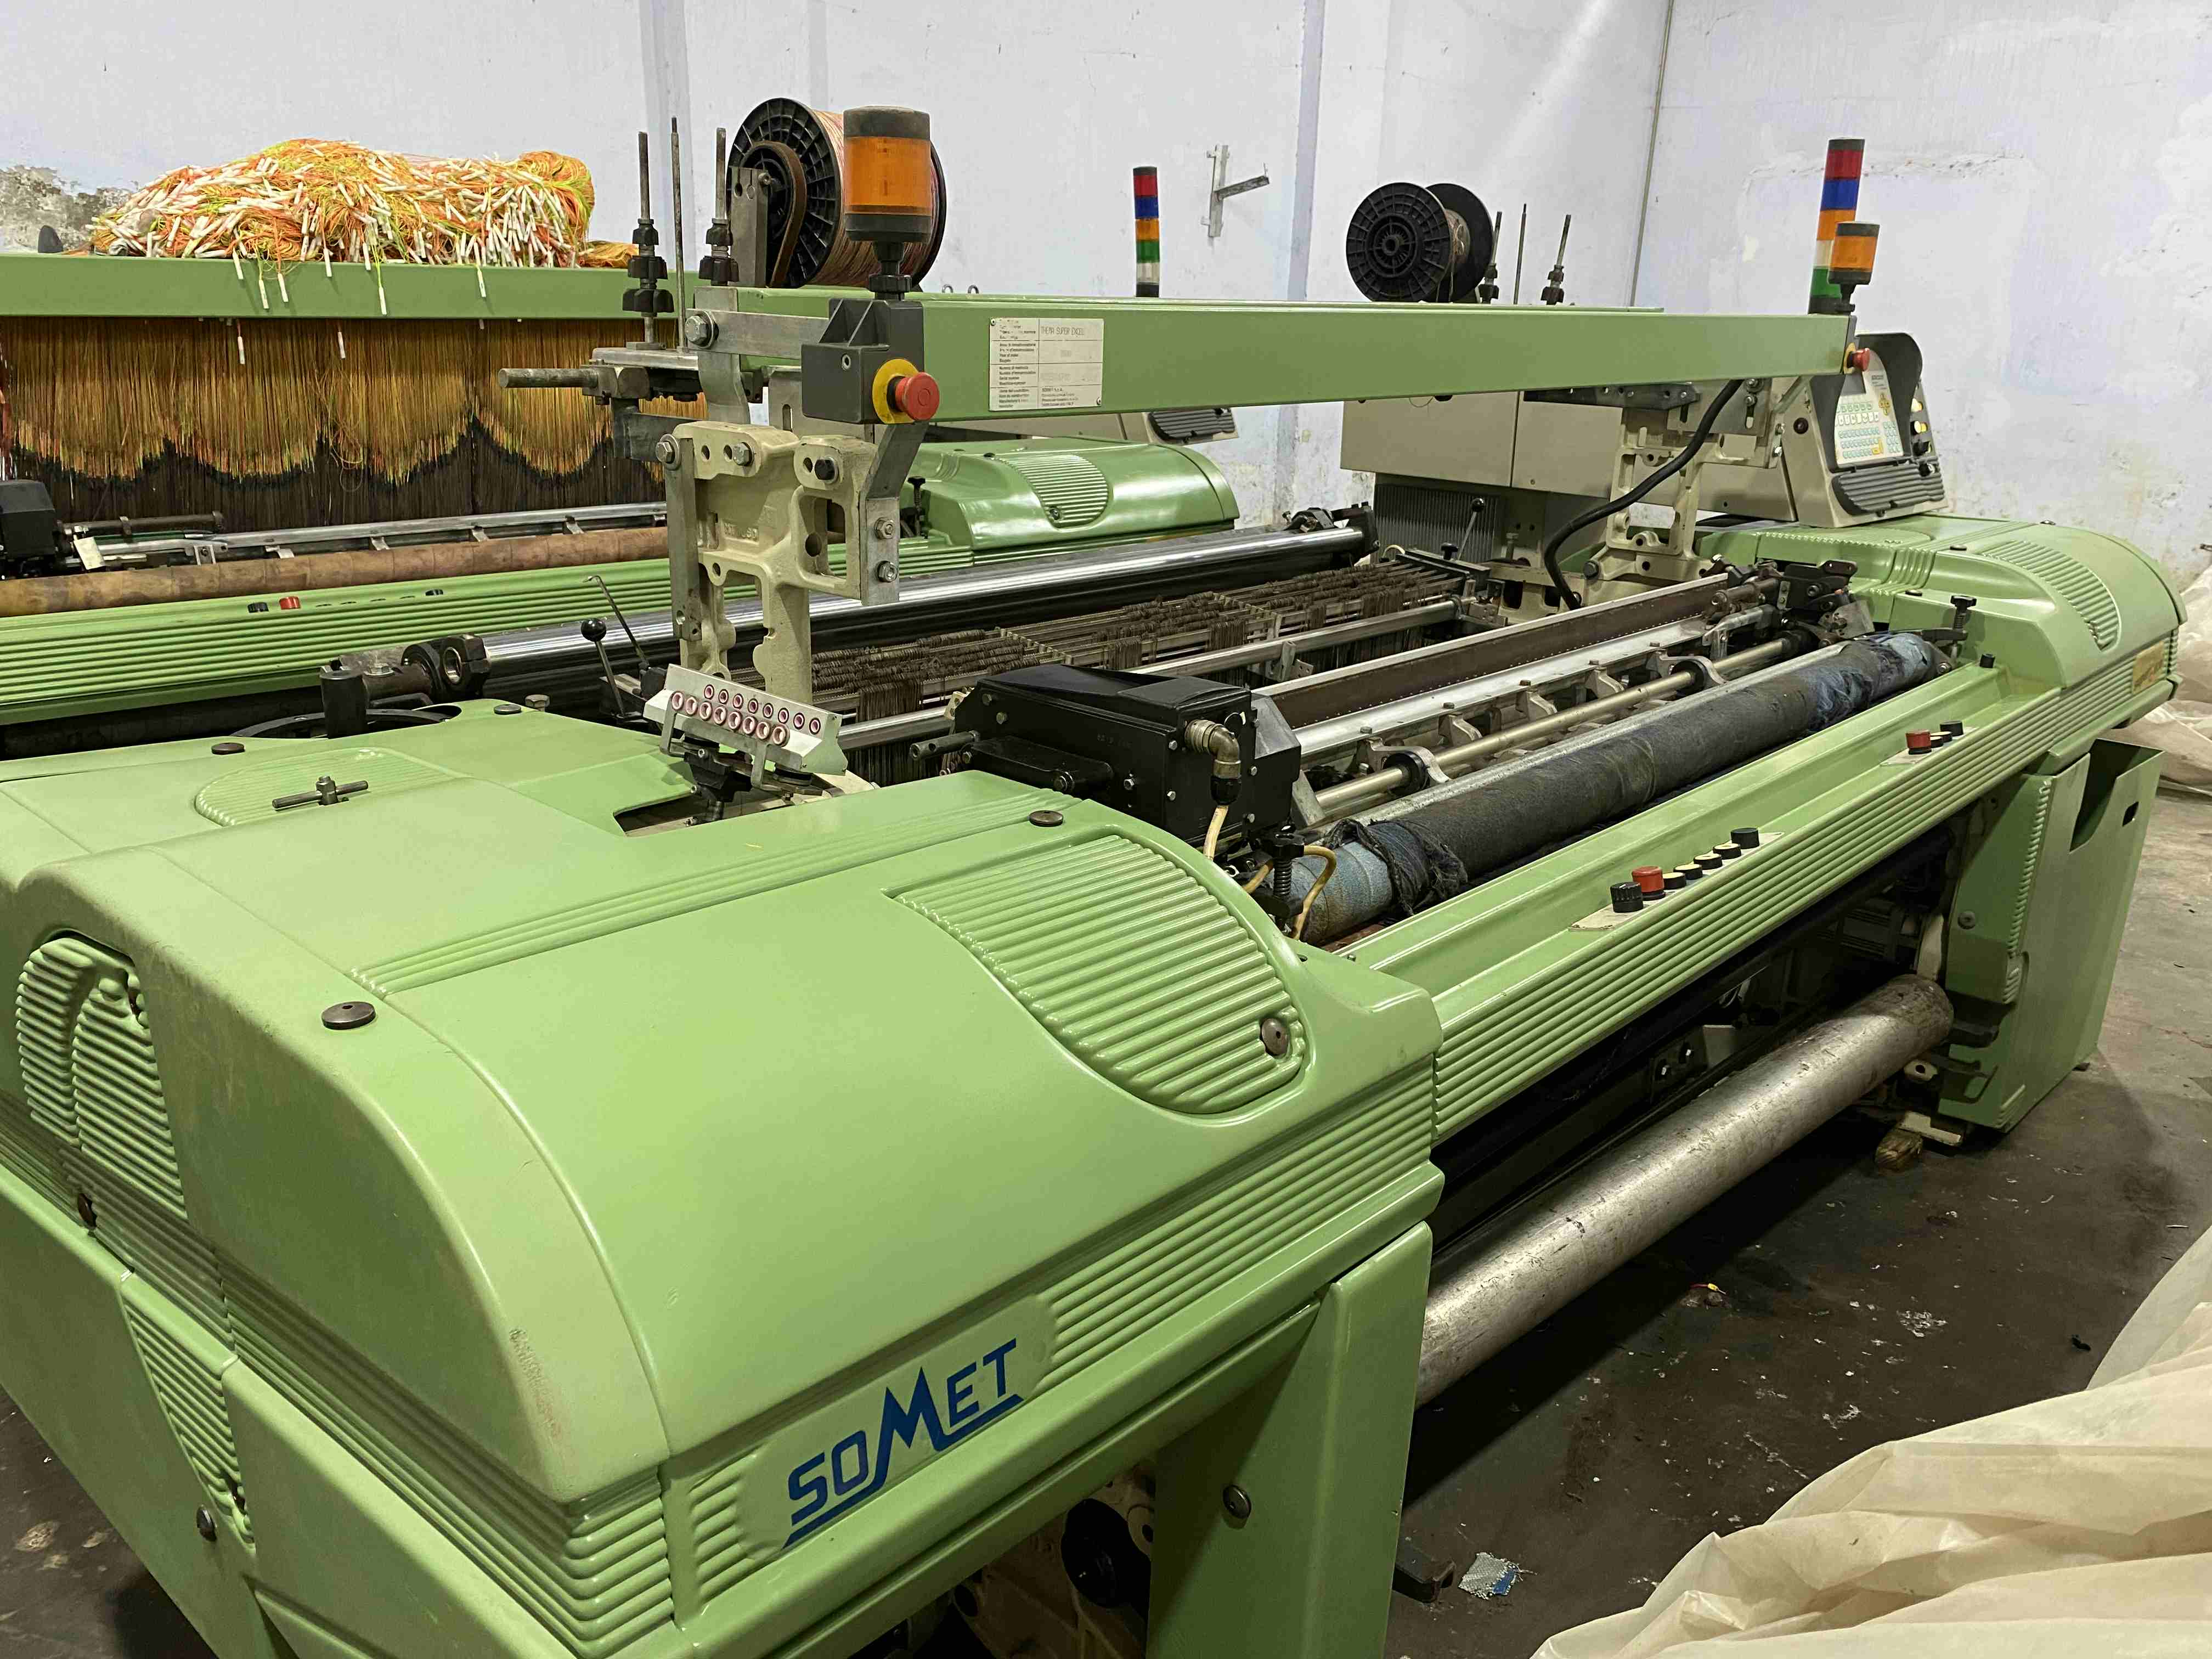 2 Somet Super Excel 165 cm as ready for jacquard